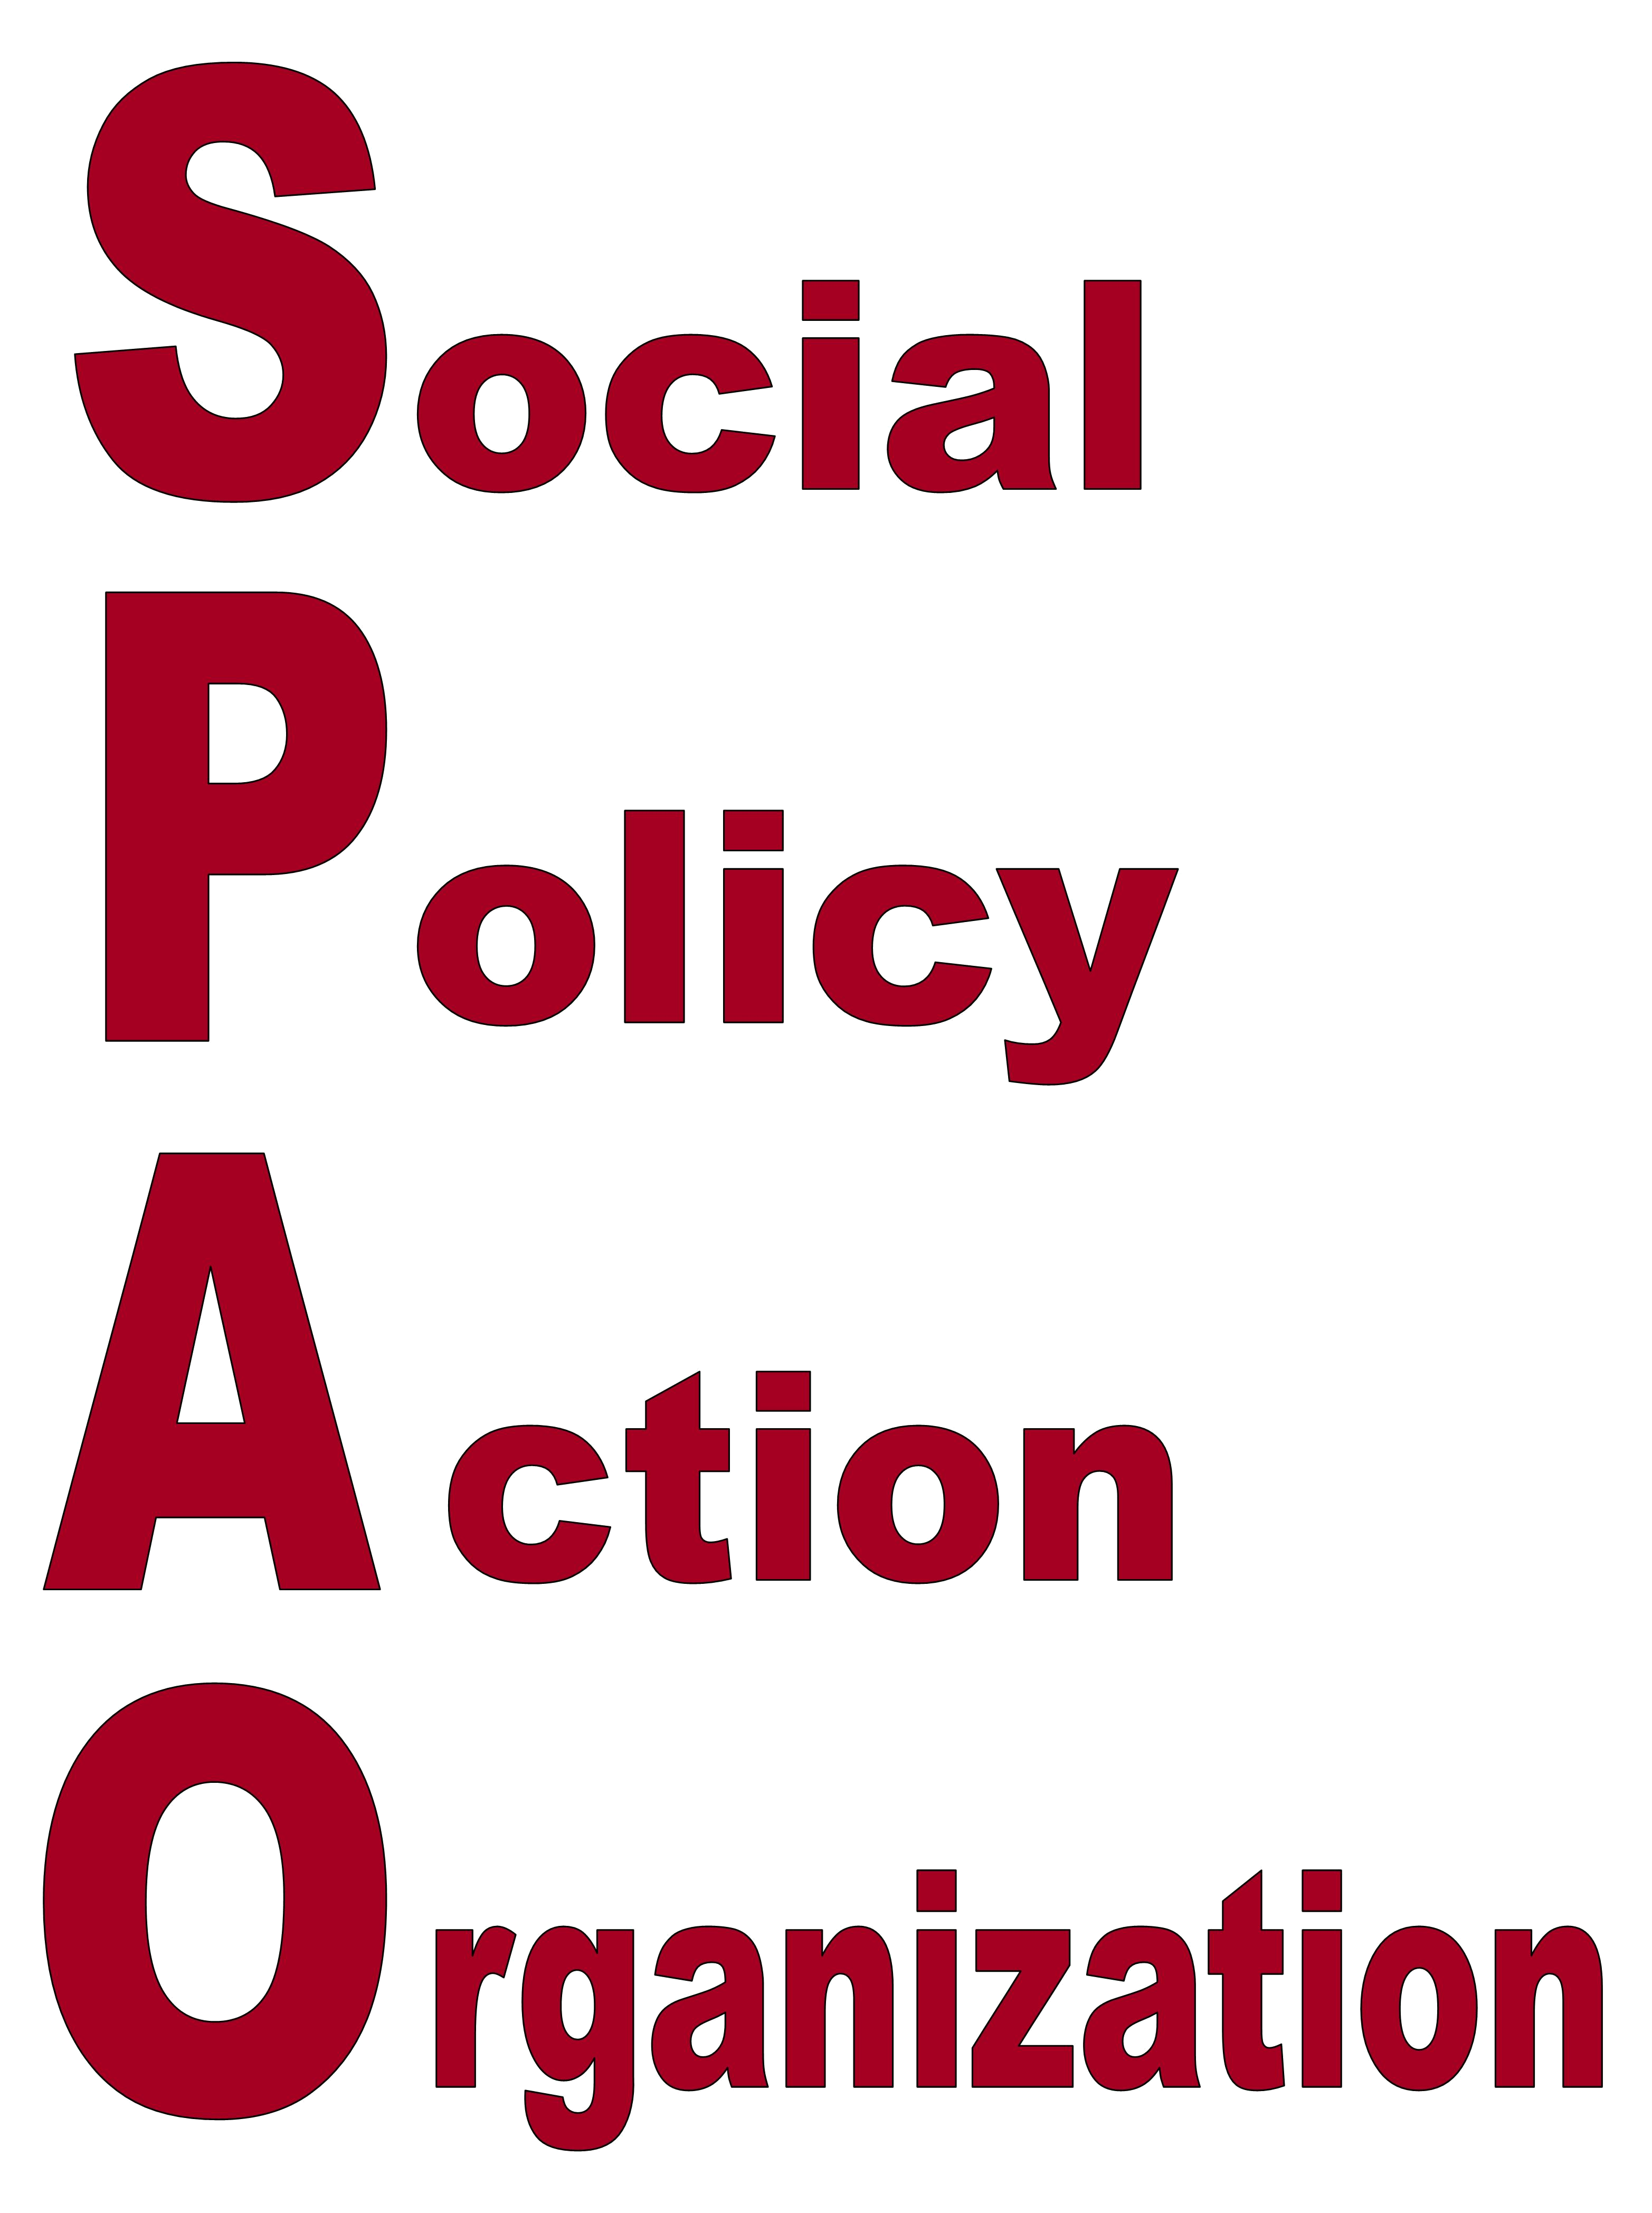 The social policy that may have